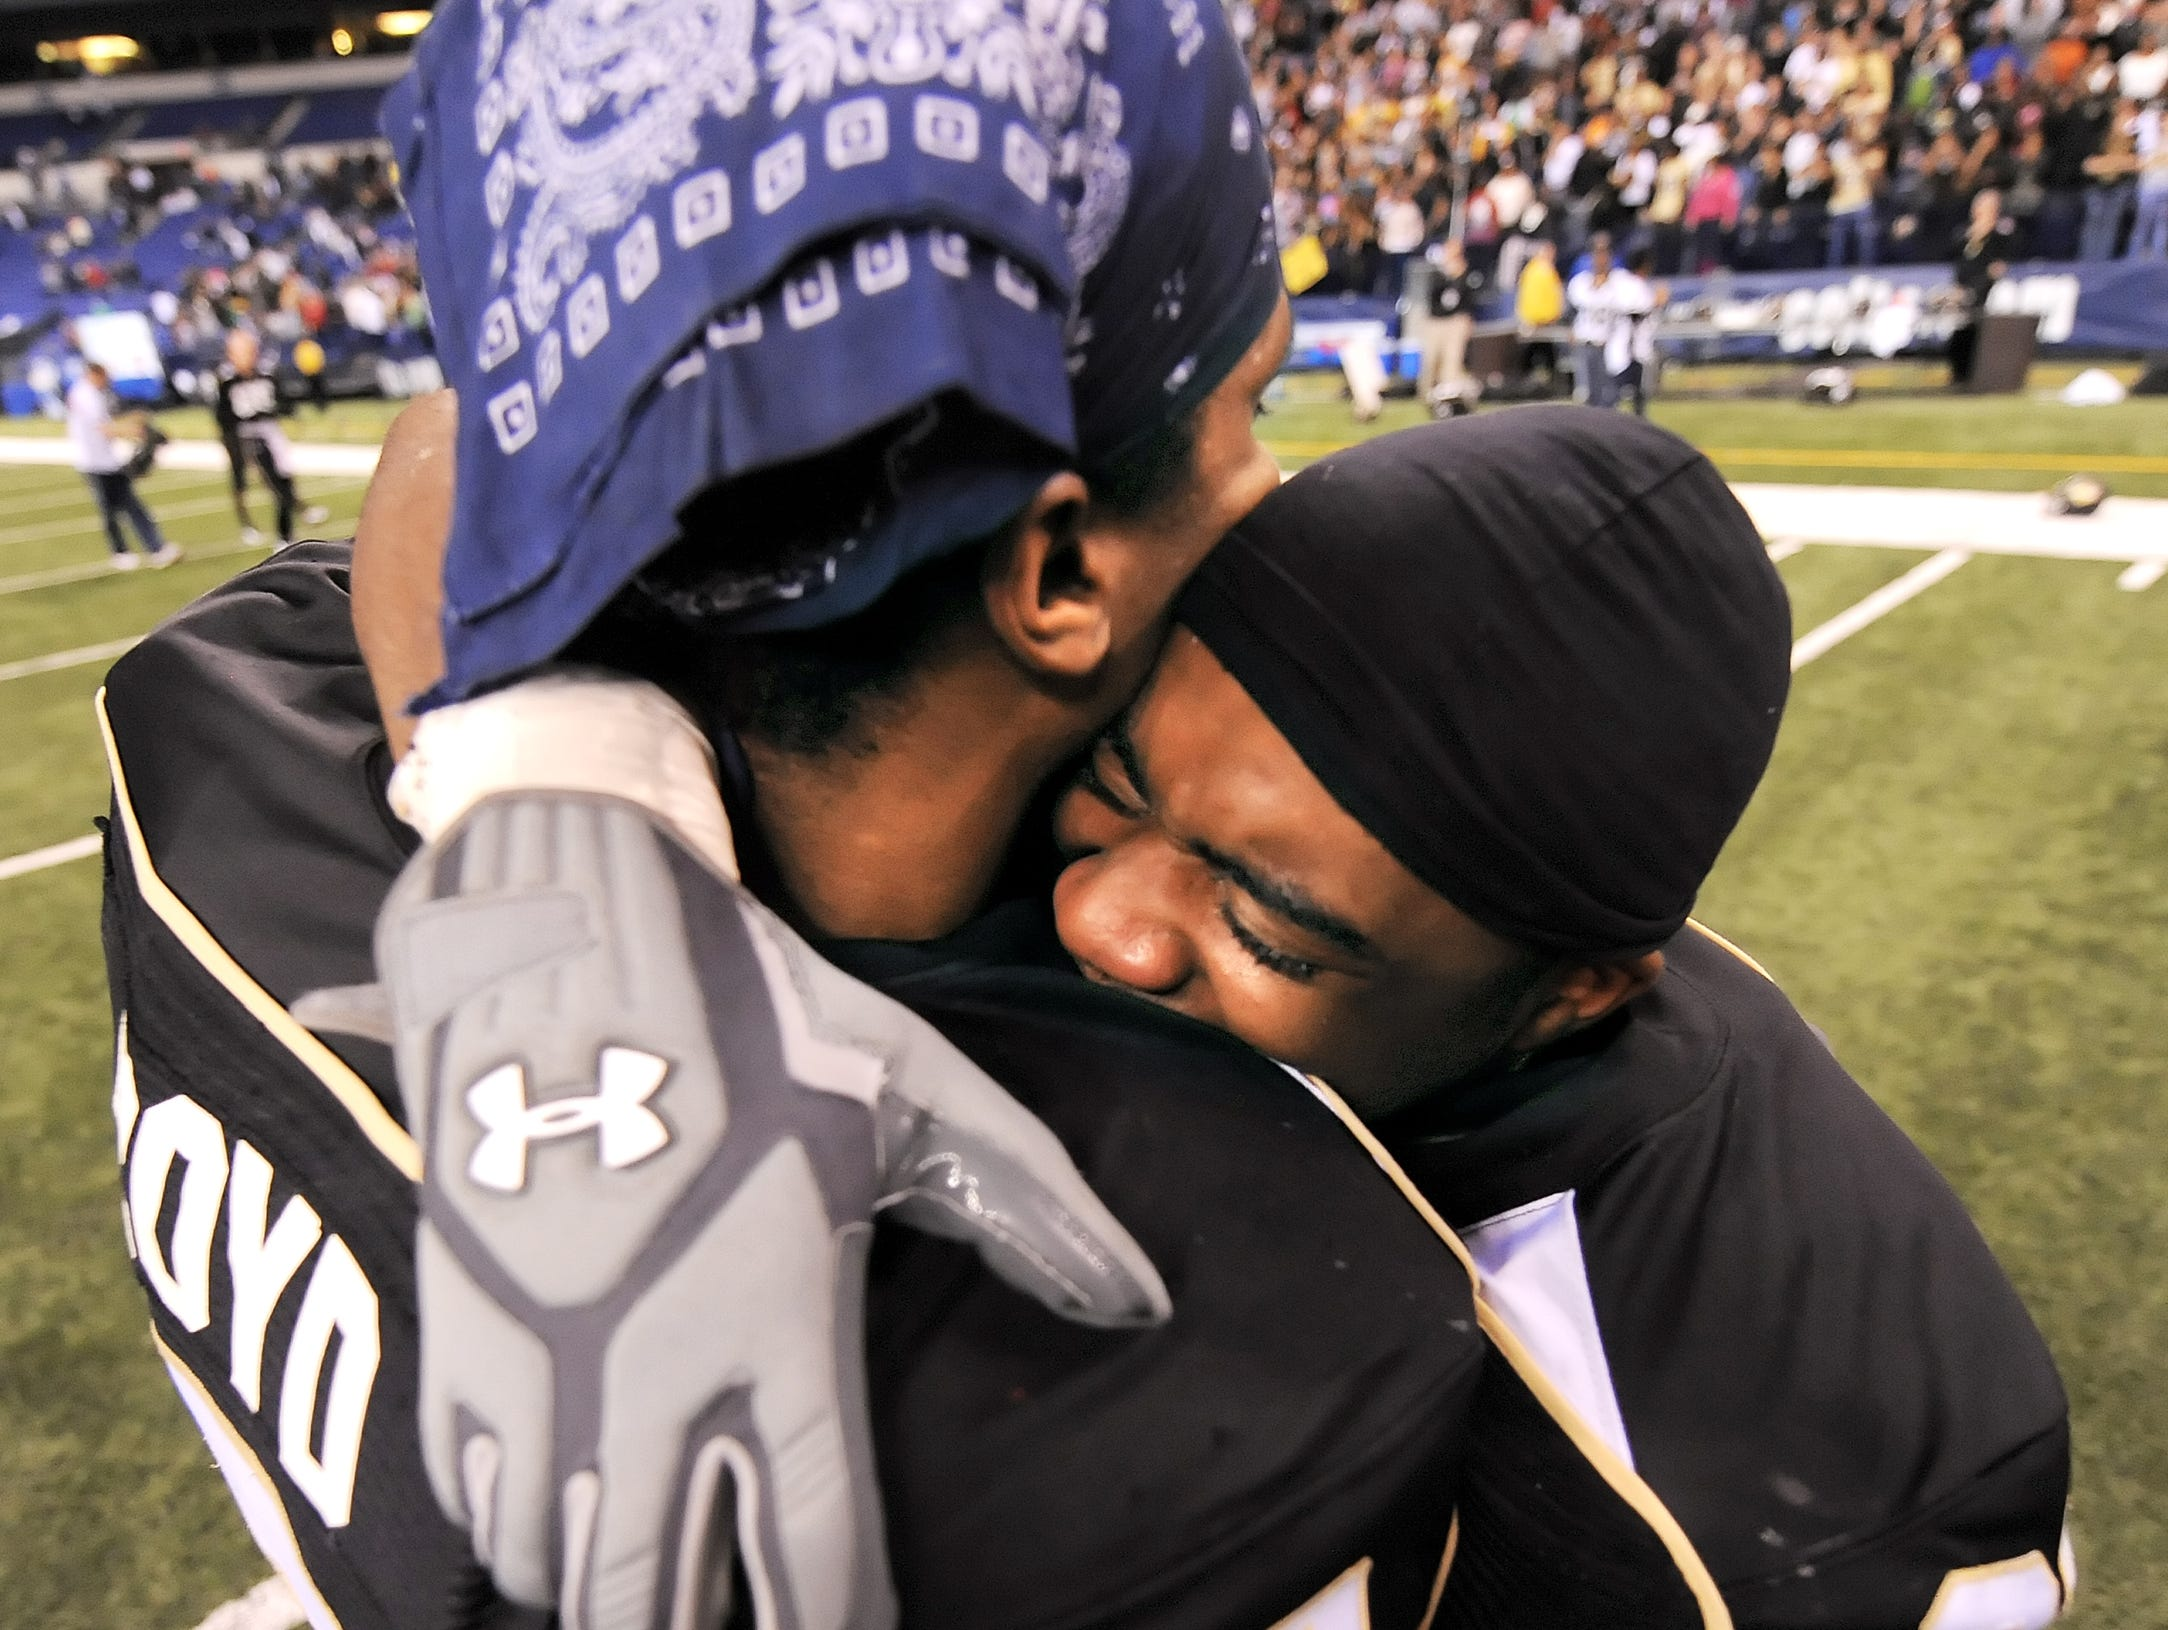 Warren Central players Jerry Boyd, left, and David Smith celebrate their win over Carmel in double overtime in the 2009 Class 5A state football championship over Carmel. Todd Clark's crew missed a critical call in that game that hurt Carmel.